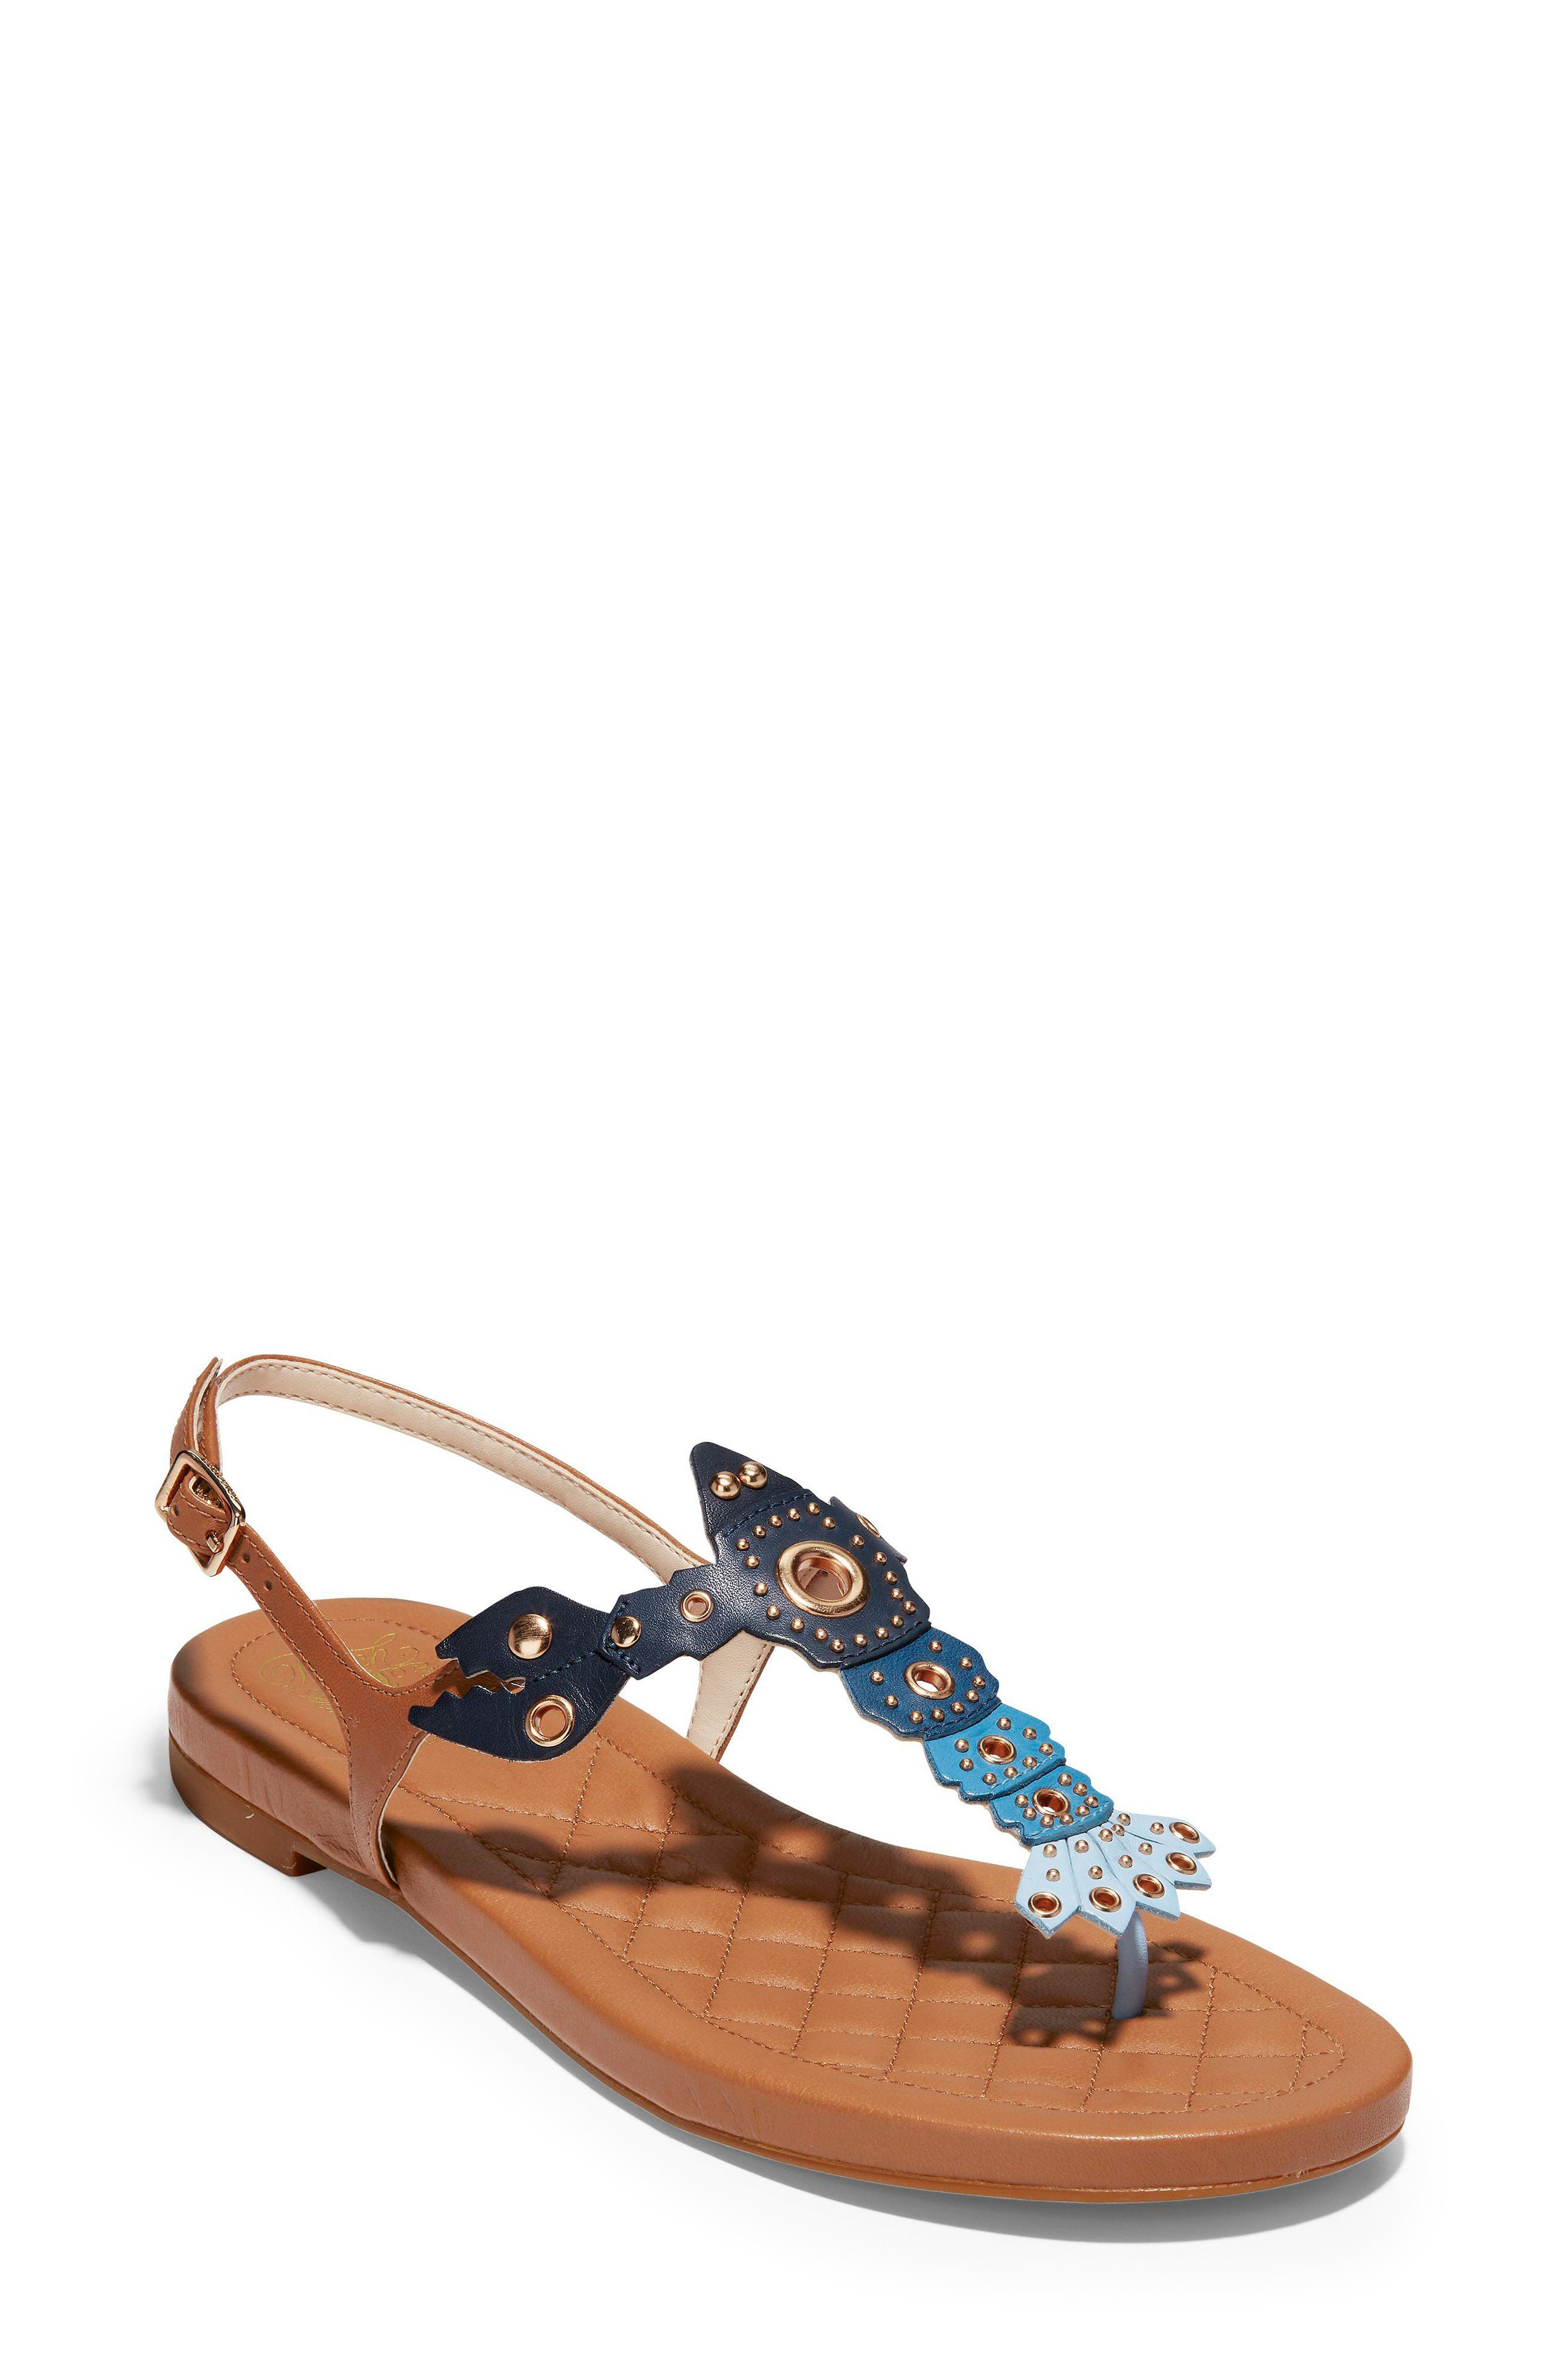 Pinch Lobster Sandal,                         Main,                         color, NAVY MULTI LEATHER